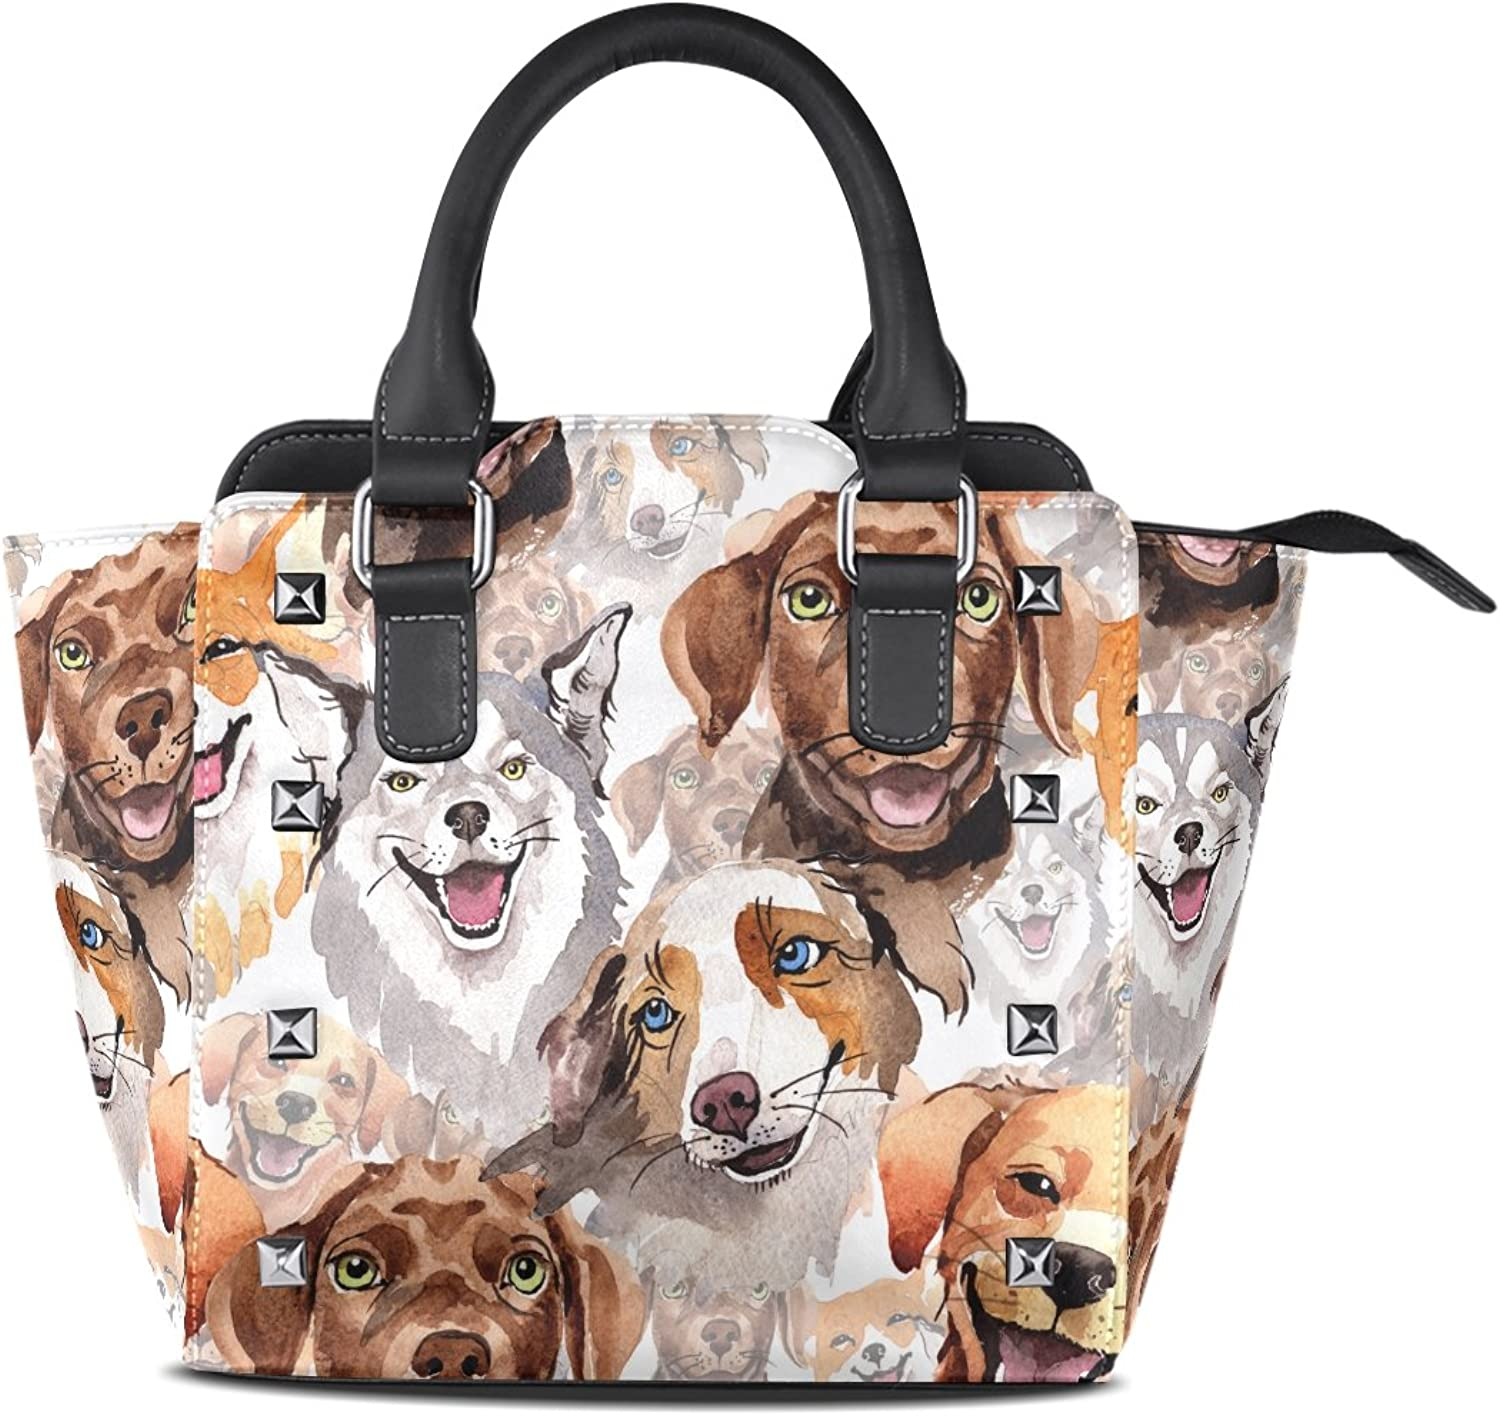 My Little Nest Women's Top Handle Satchel Handbag Watercolor Dogs Ladies PU Leather Shoulder Bag Crossbody Bag